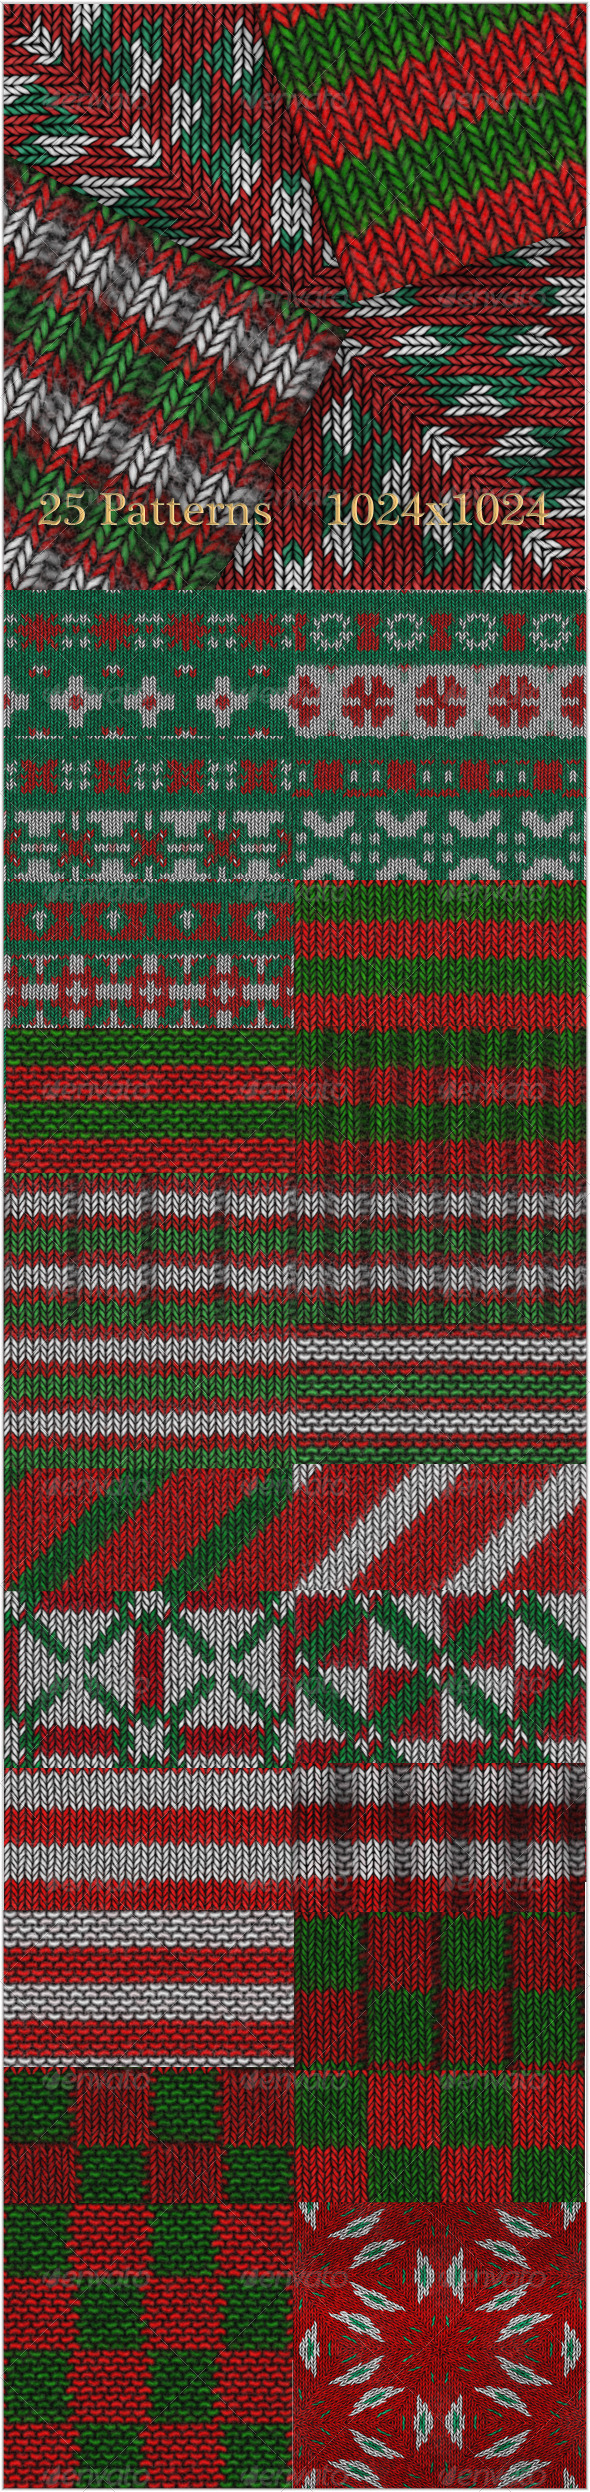 GraphicRiver 25 Christmas Knitting Patterns 6237012